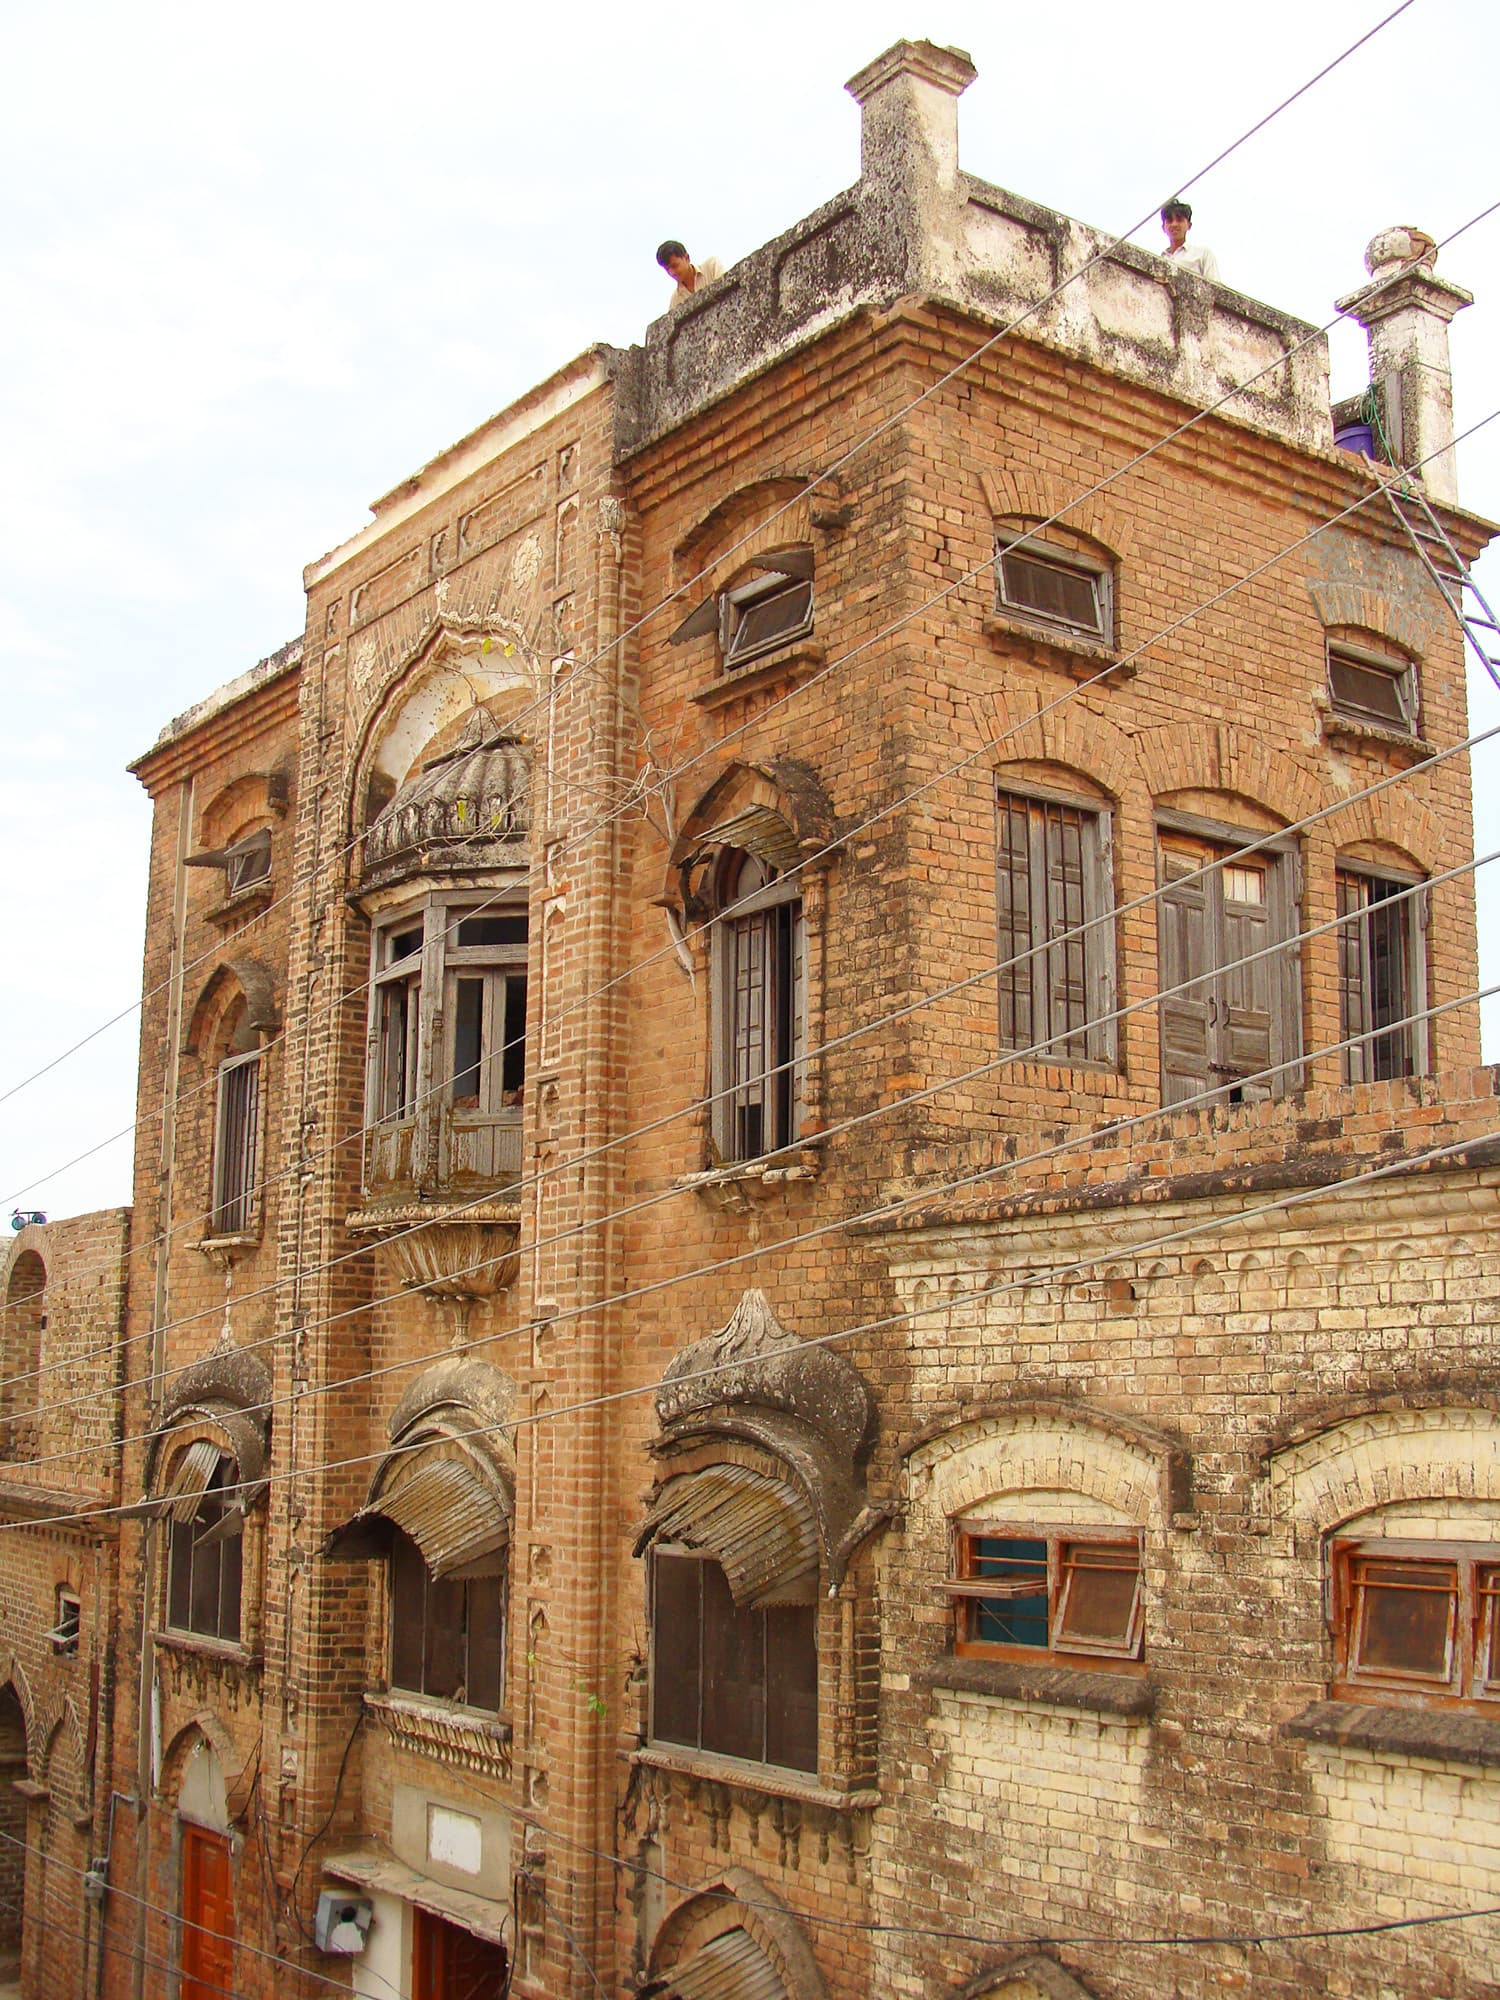 A View of Atam Singh haveli at Daultala.